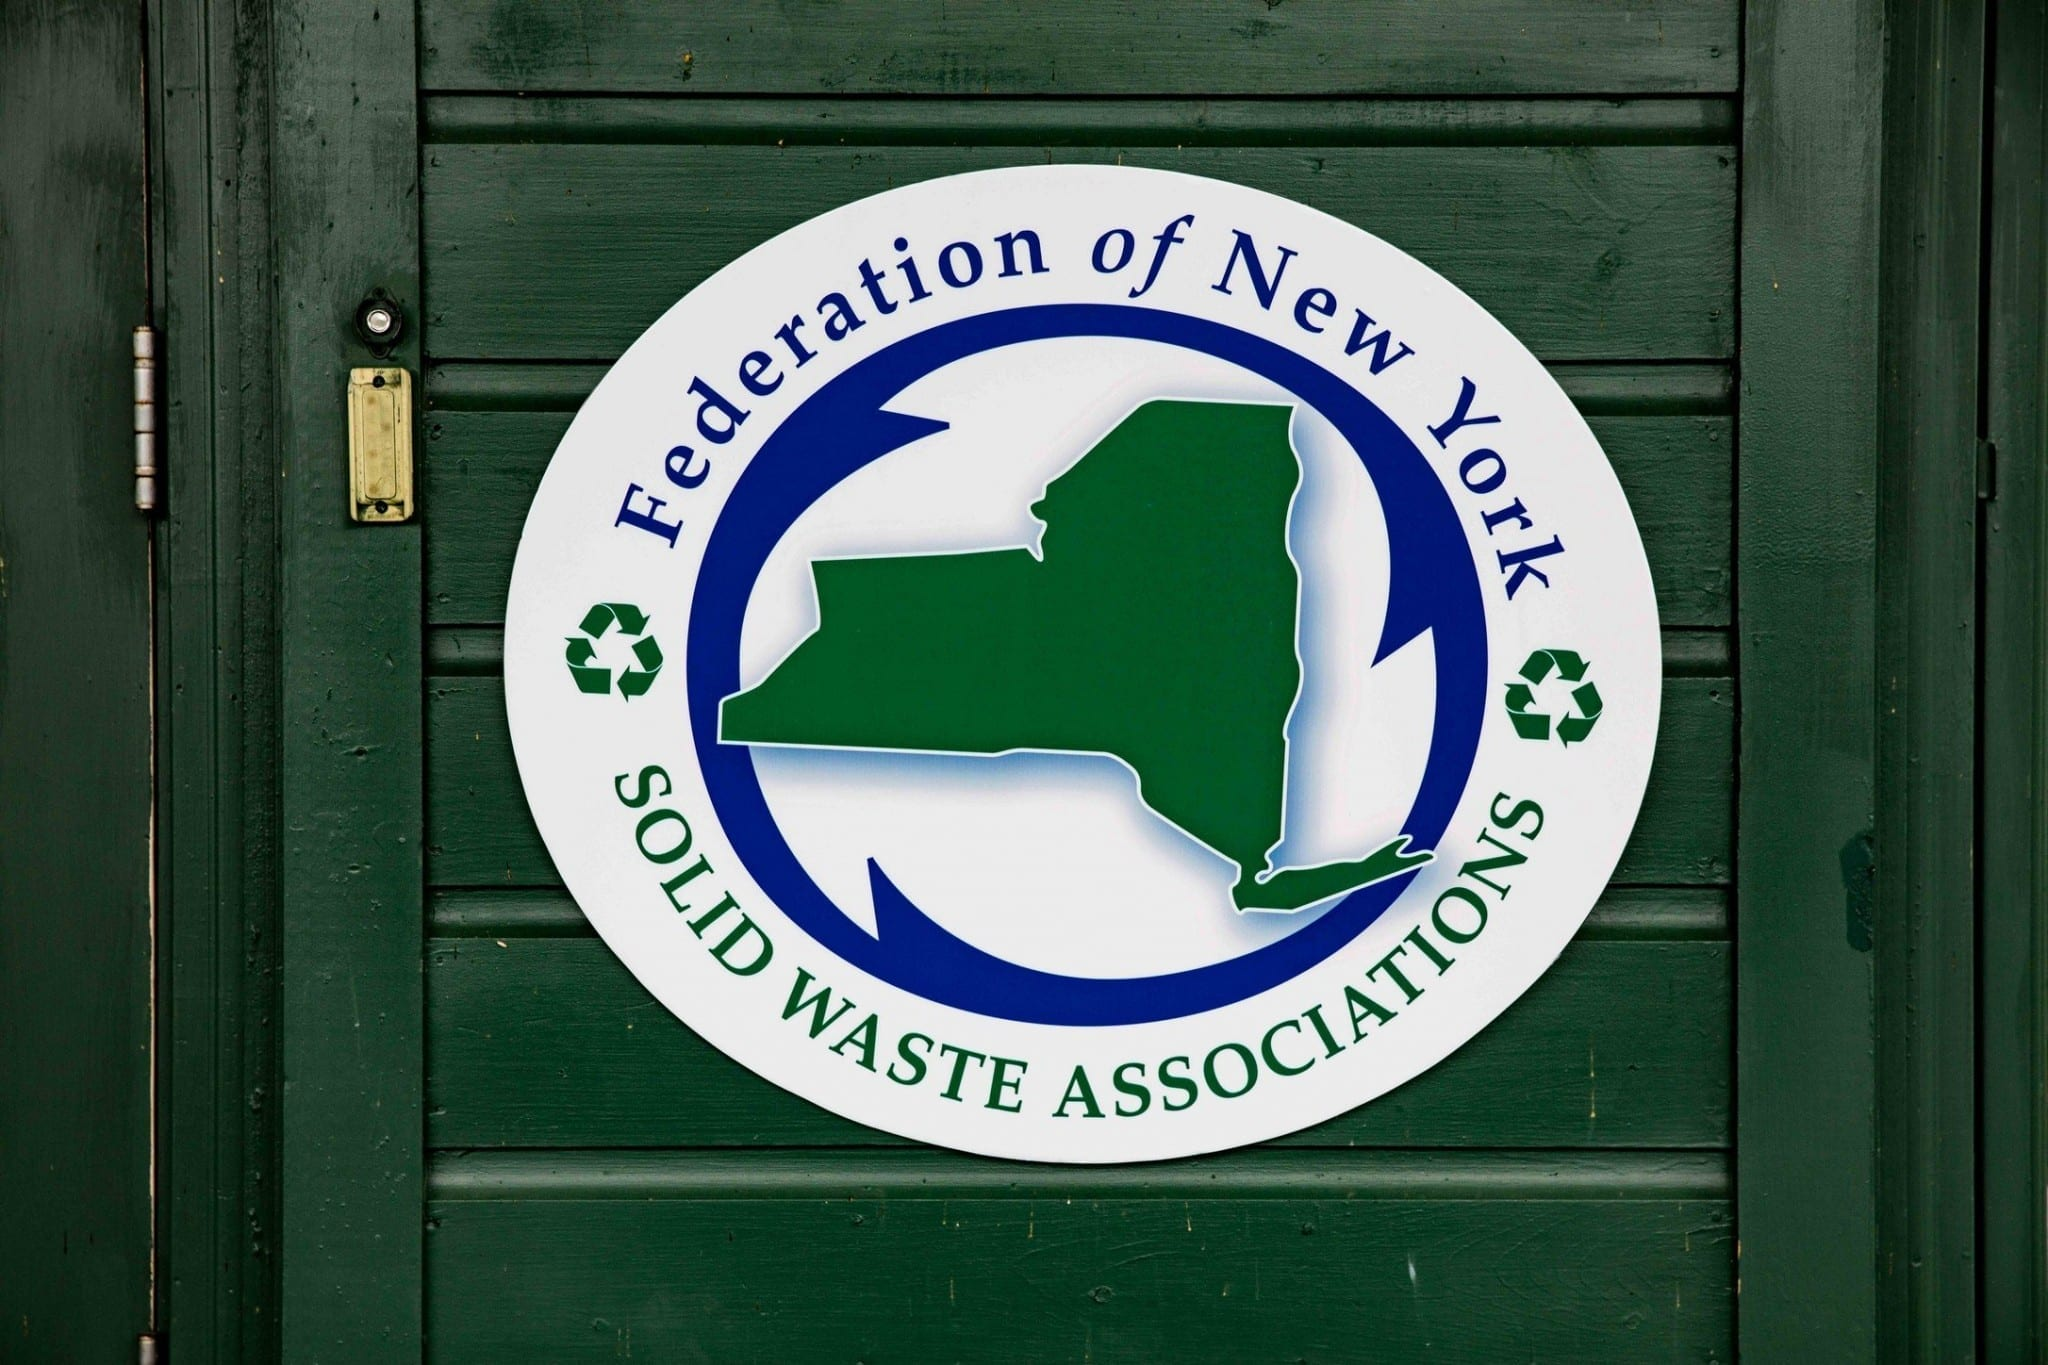 NY Federation solid waste association logo on a wood door